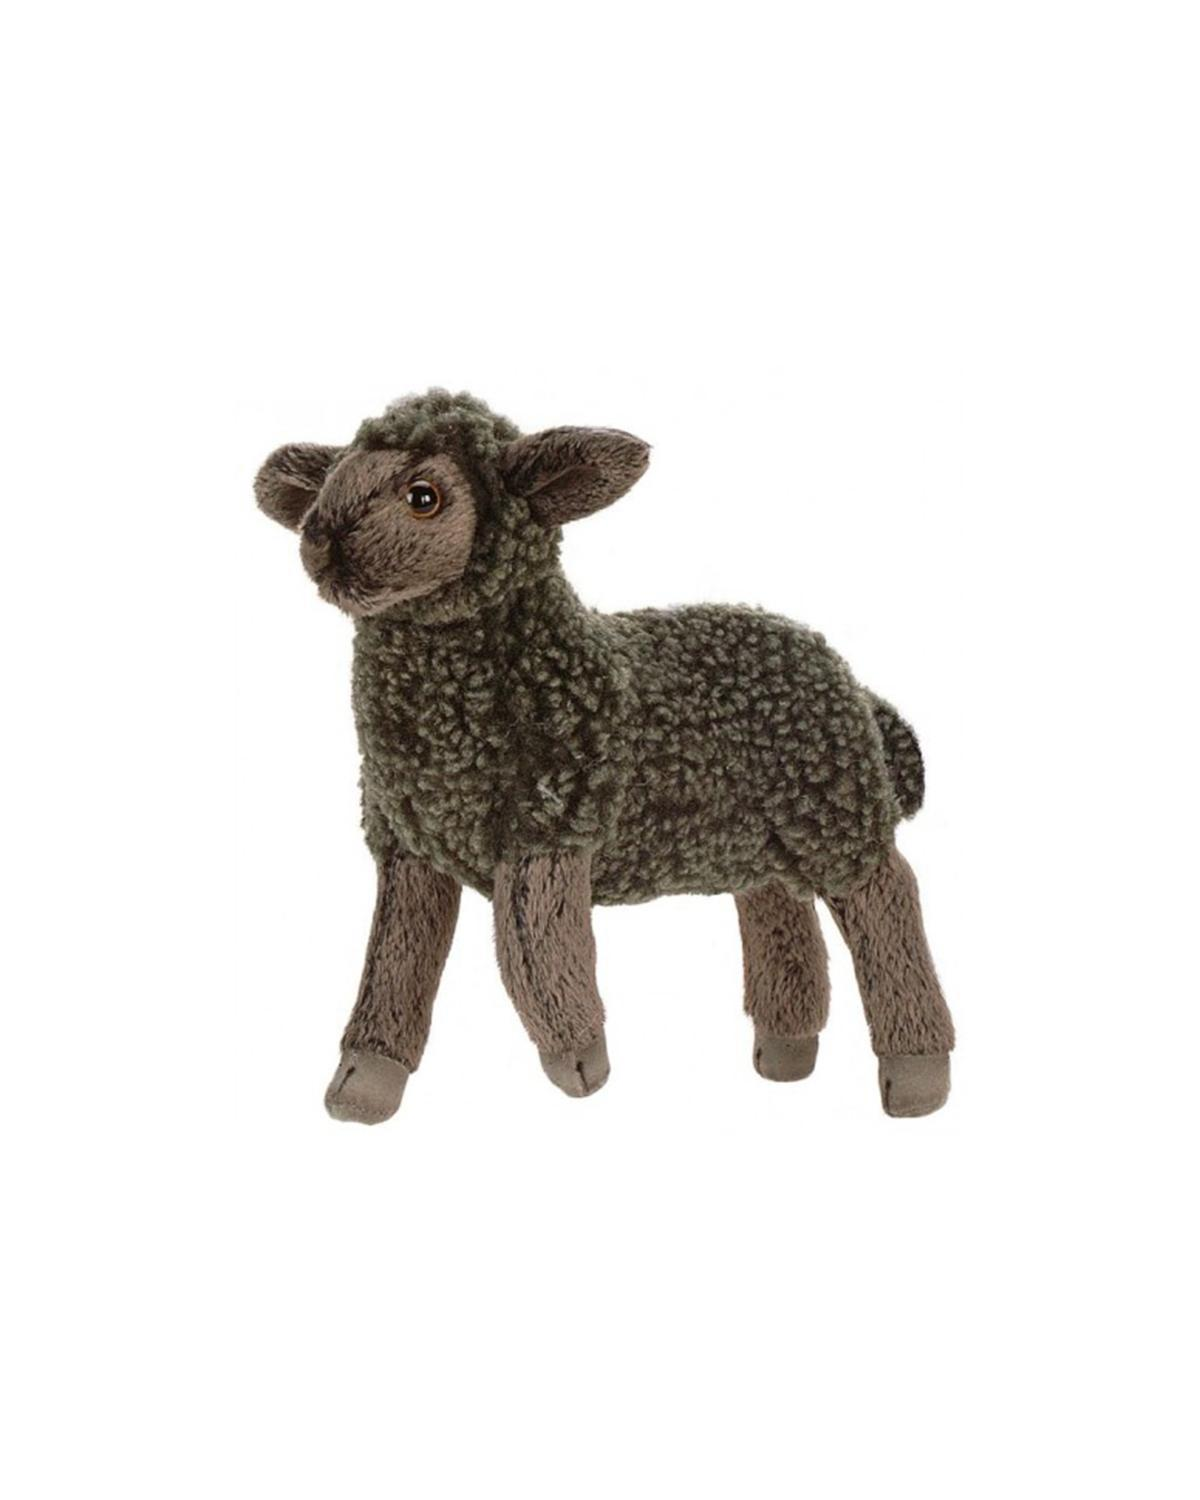 Little hansa toys play Little Black Lamb